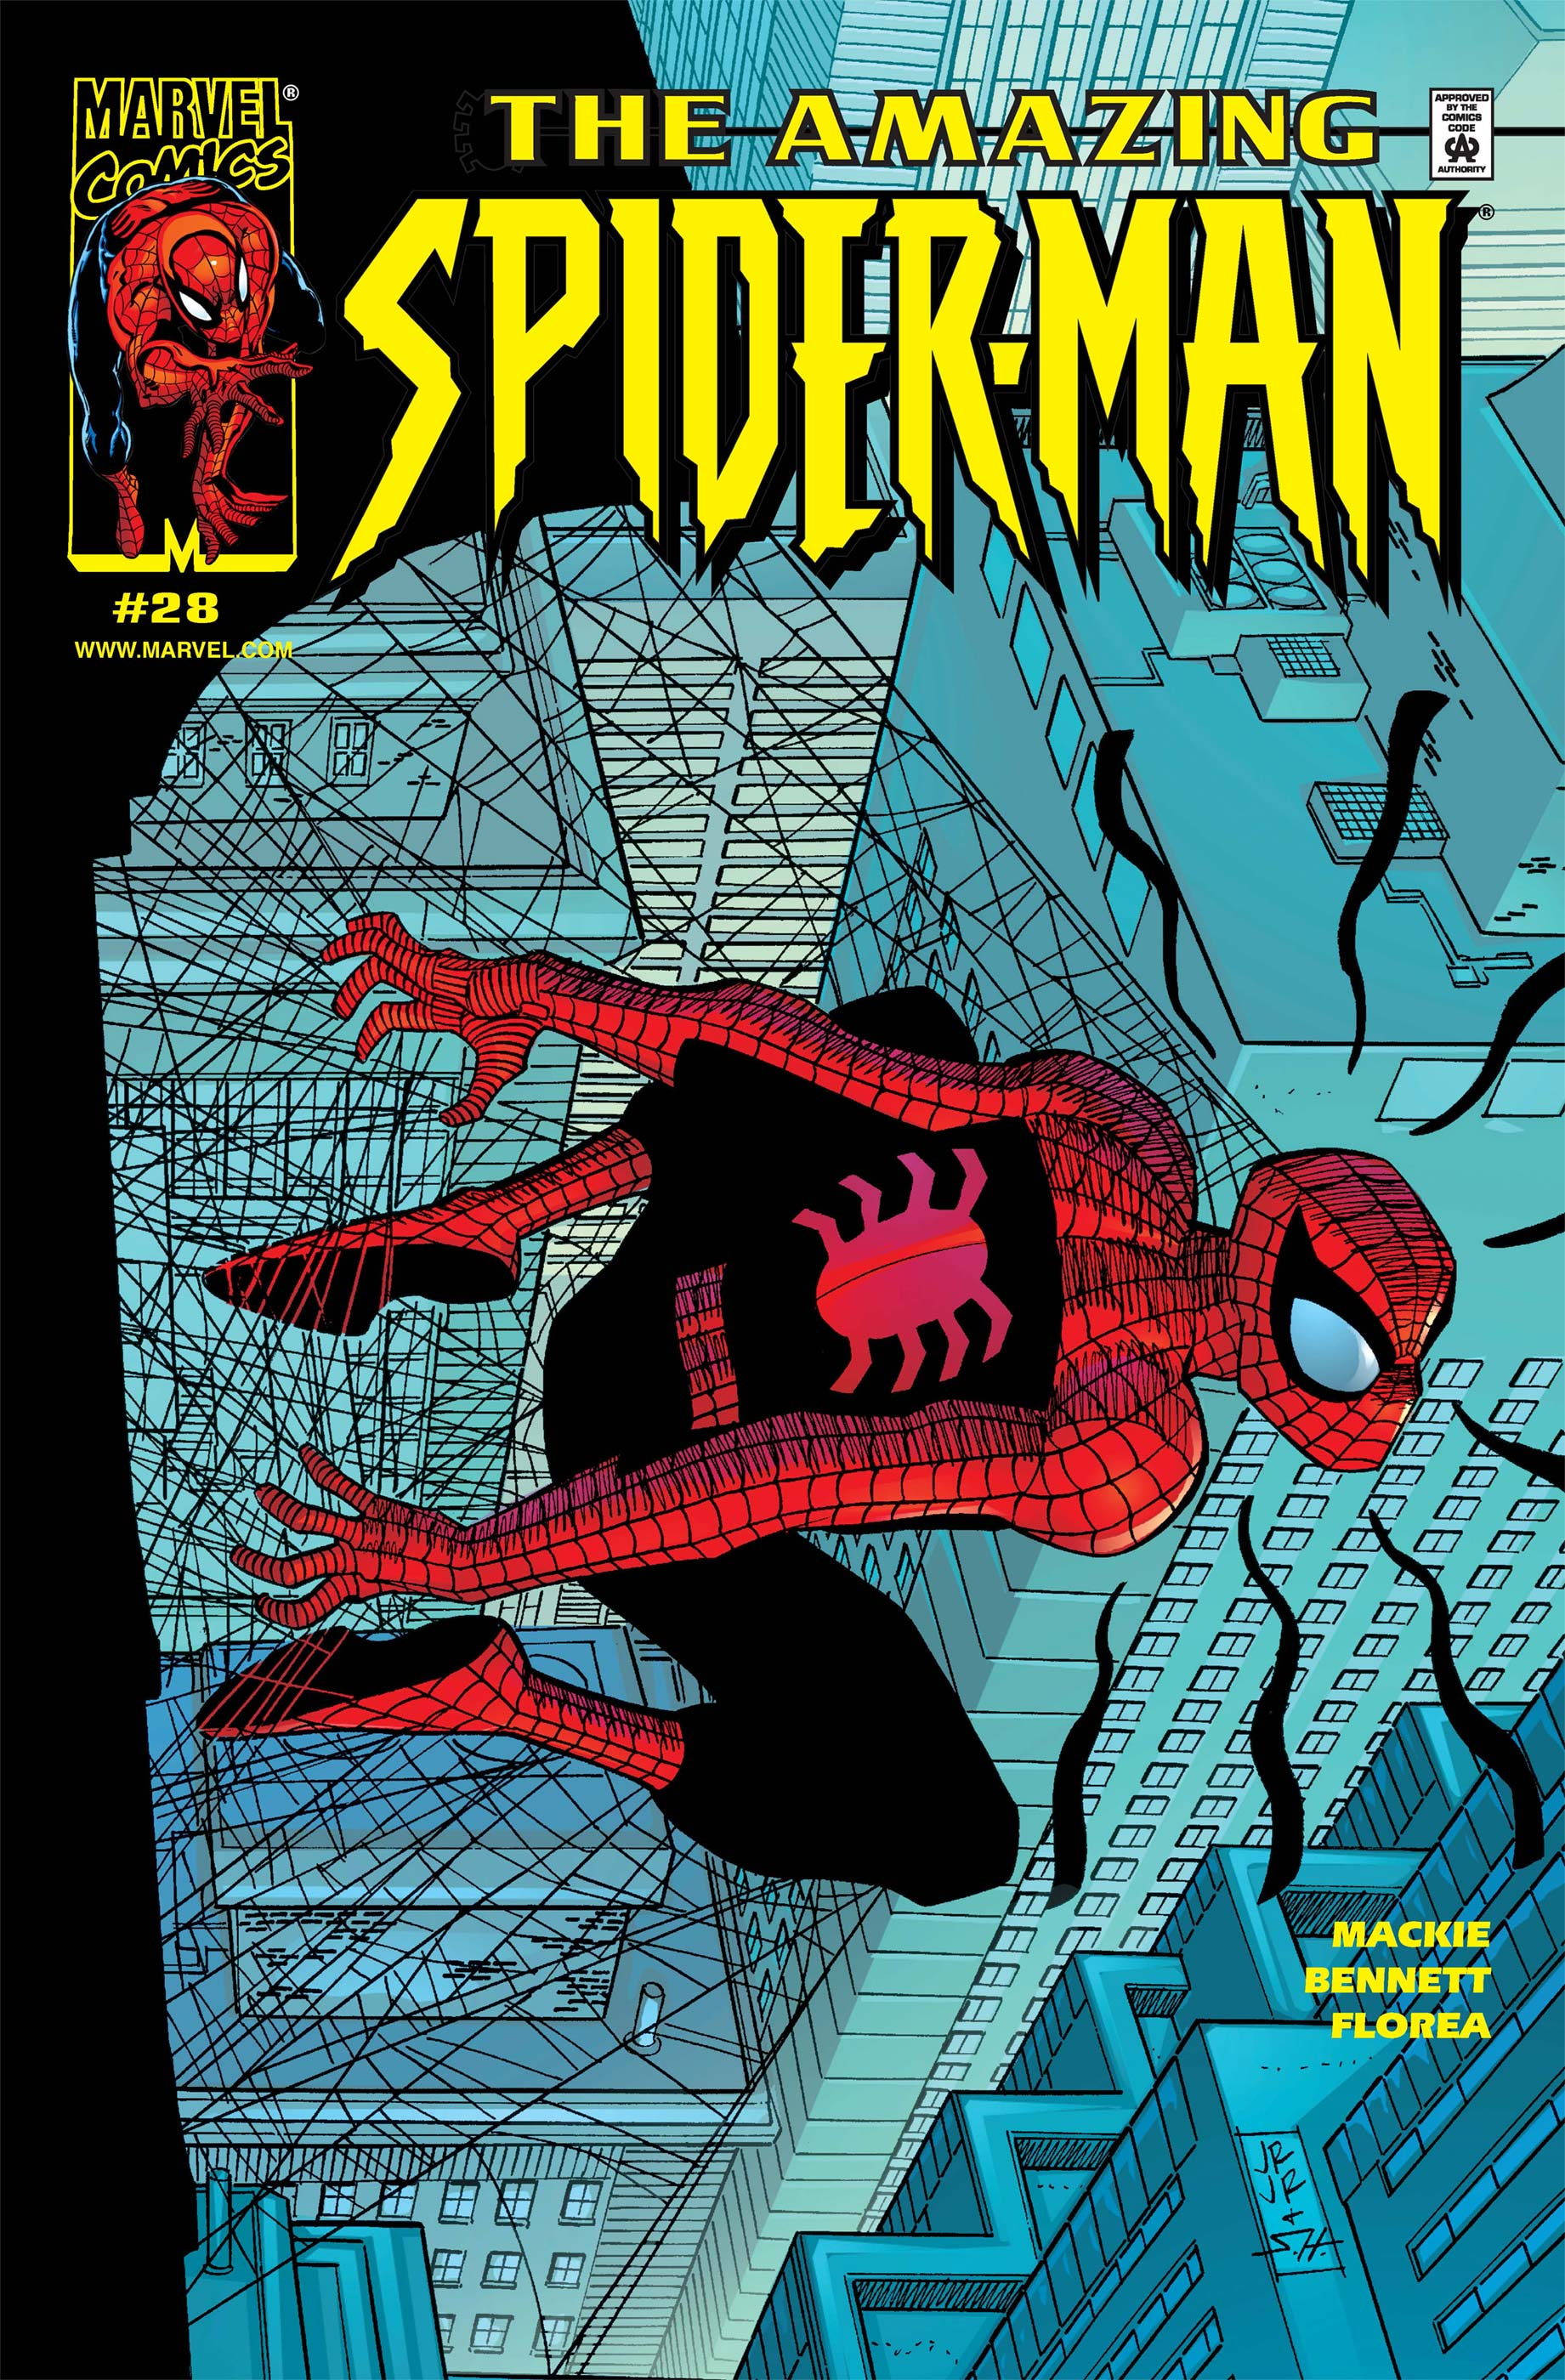 Amazing Spider-Man (1999) #28